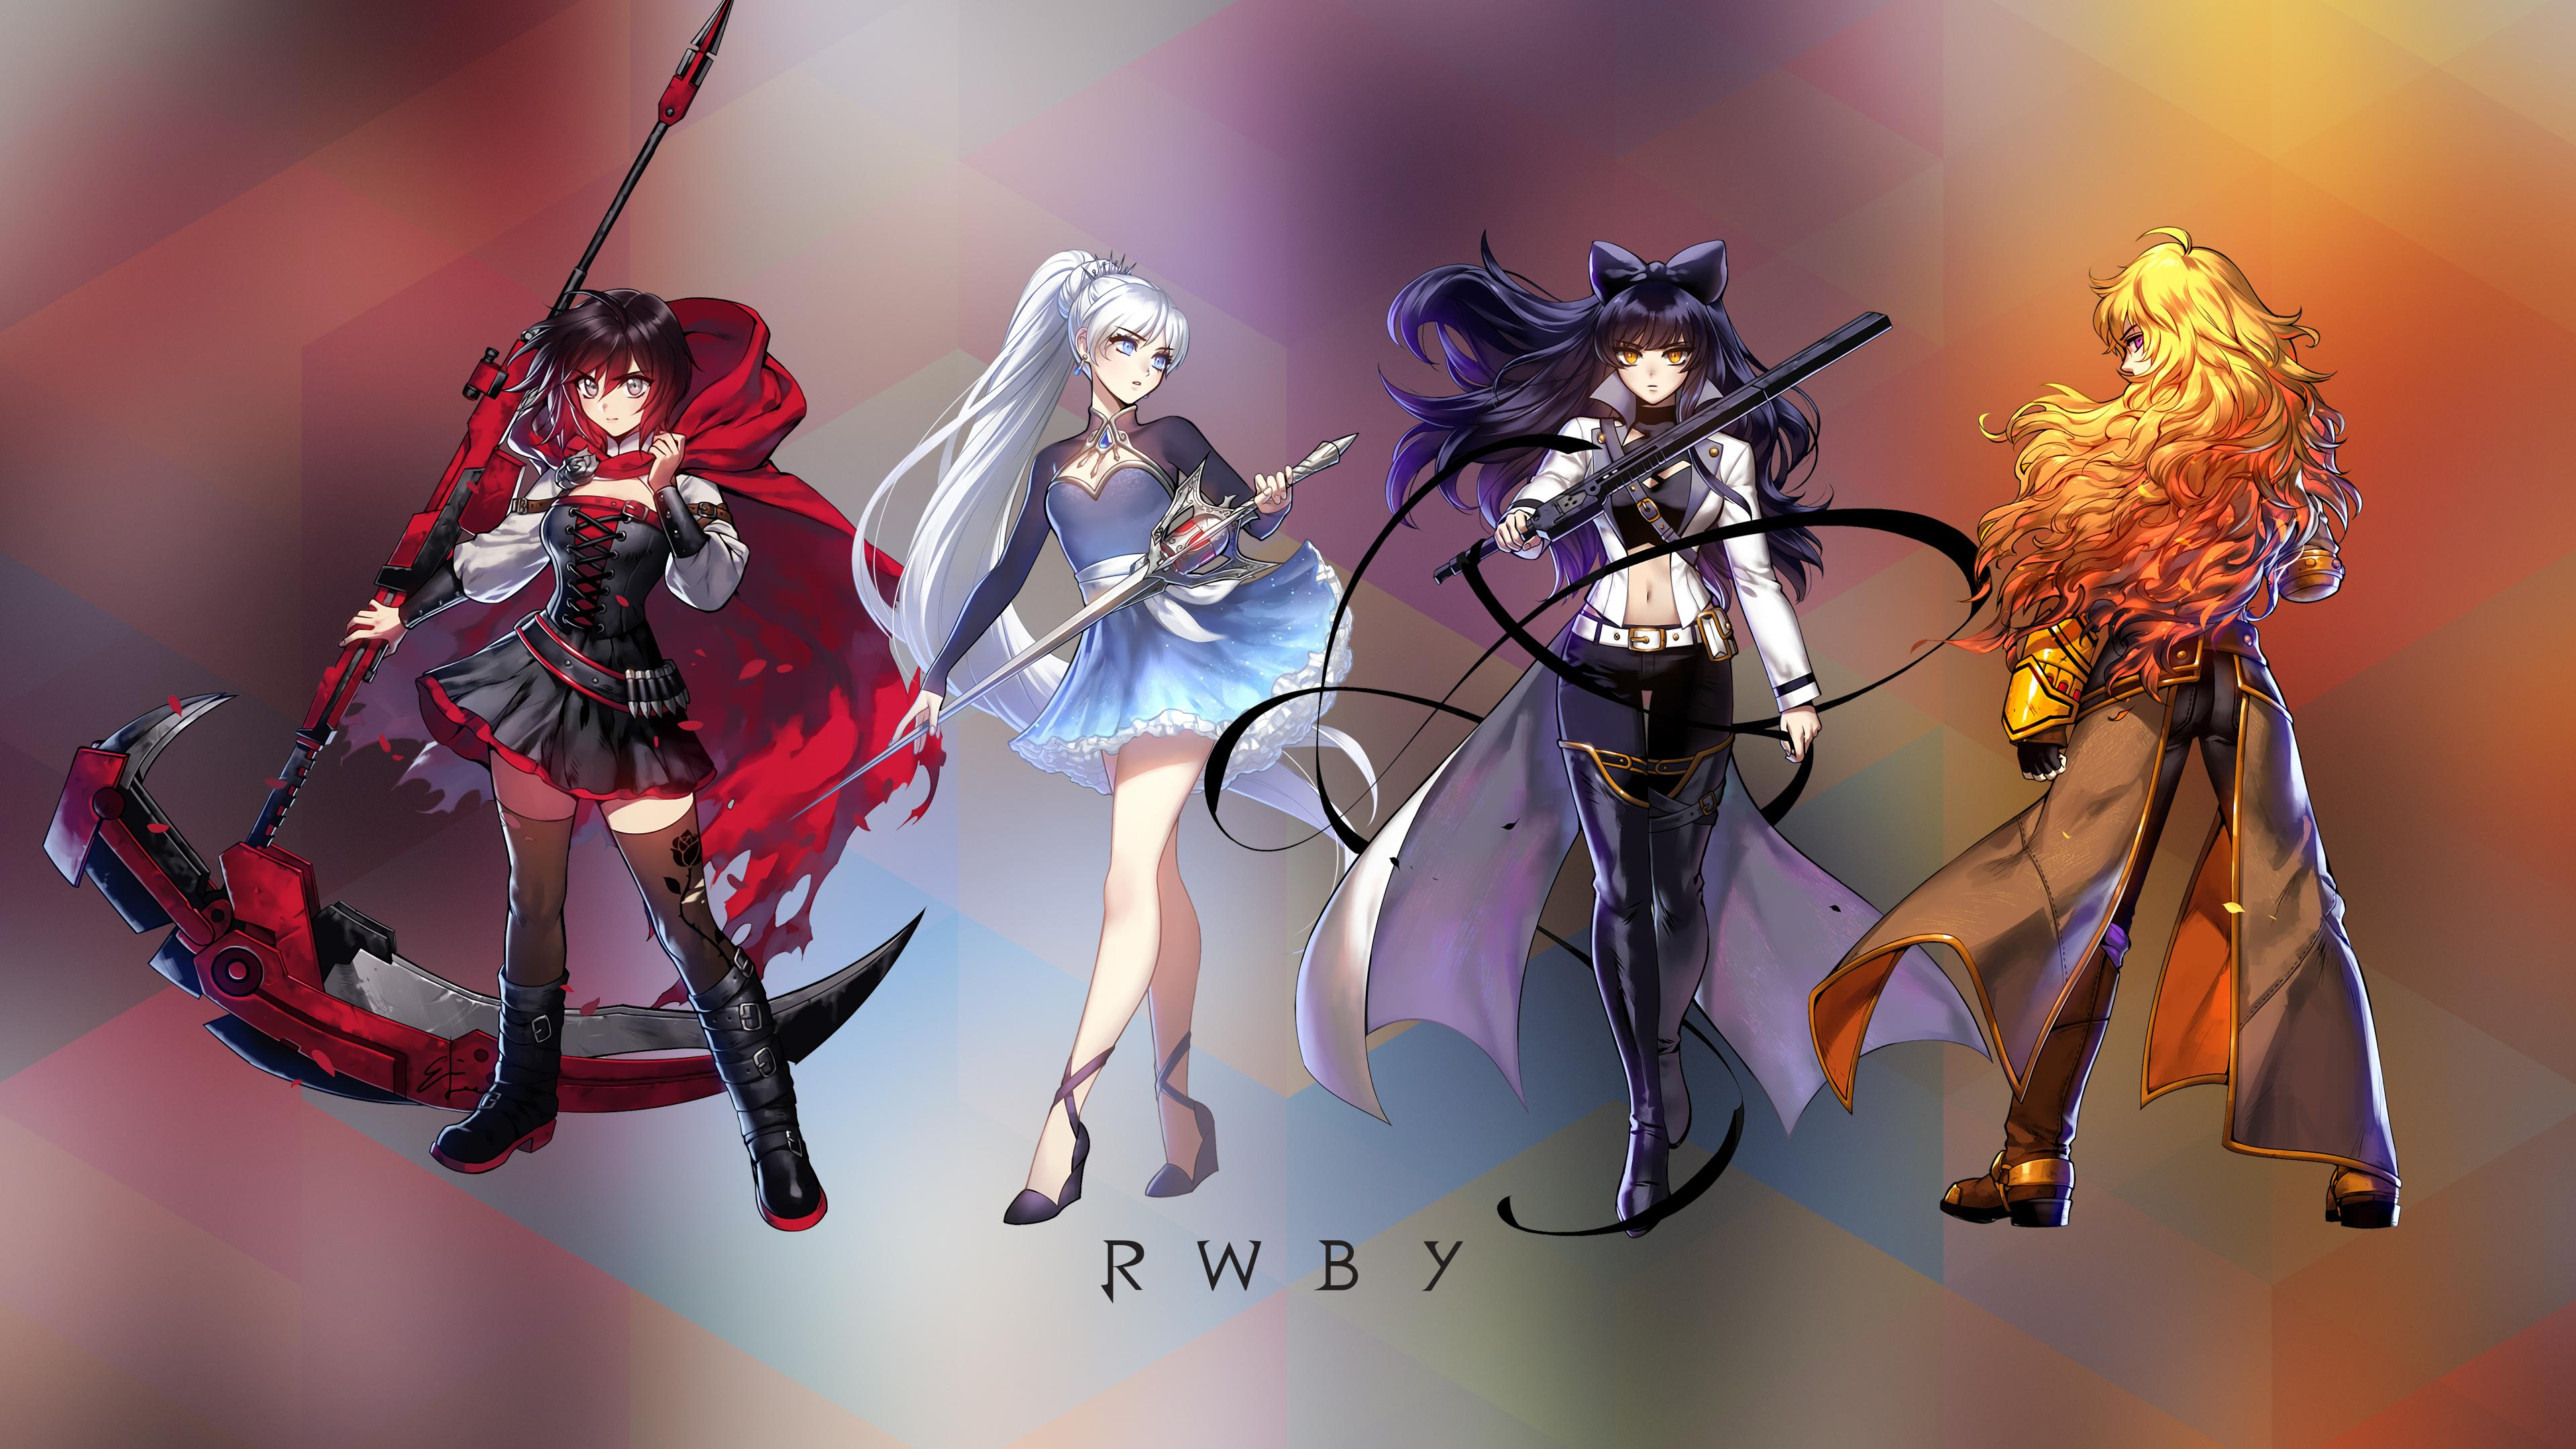 rwby wallpaper hd 1080p